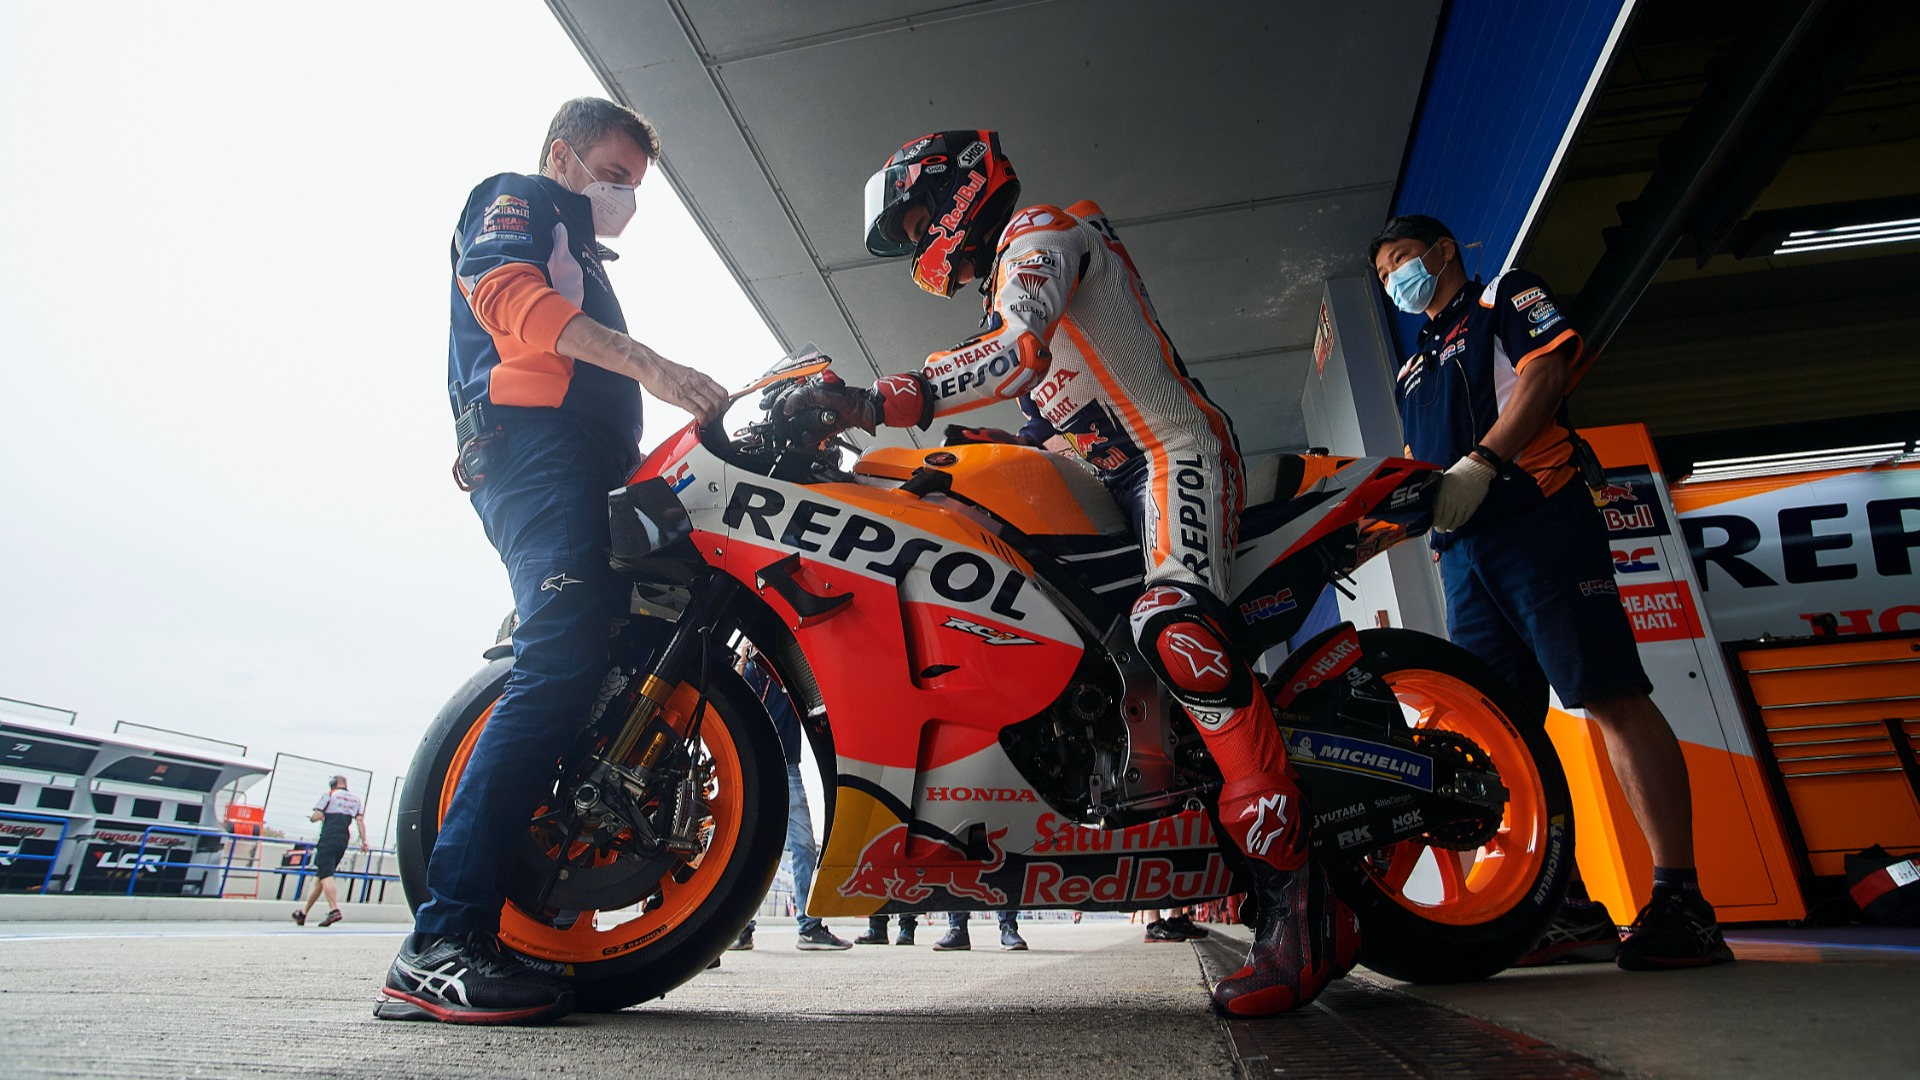 Repsol Honda superstar Marc Marquez crashed at Jerez on Saturday and soon withdrew from Monday's testing.